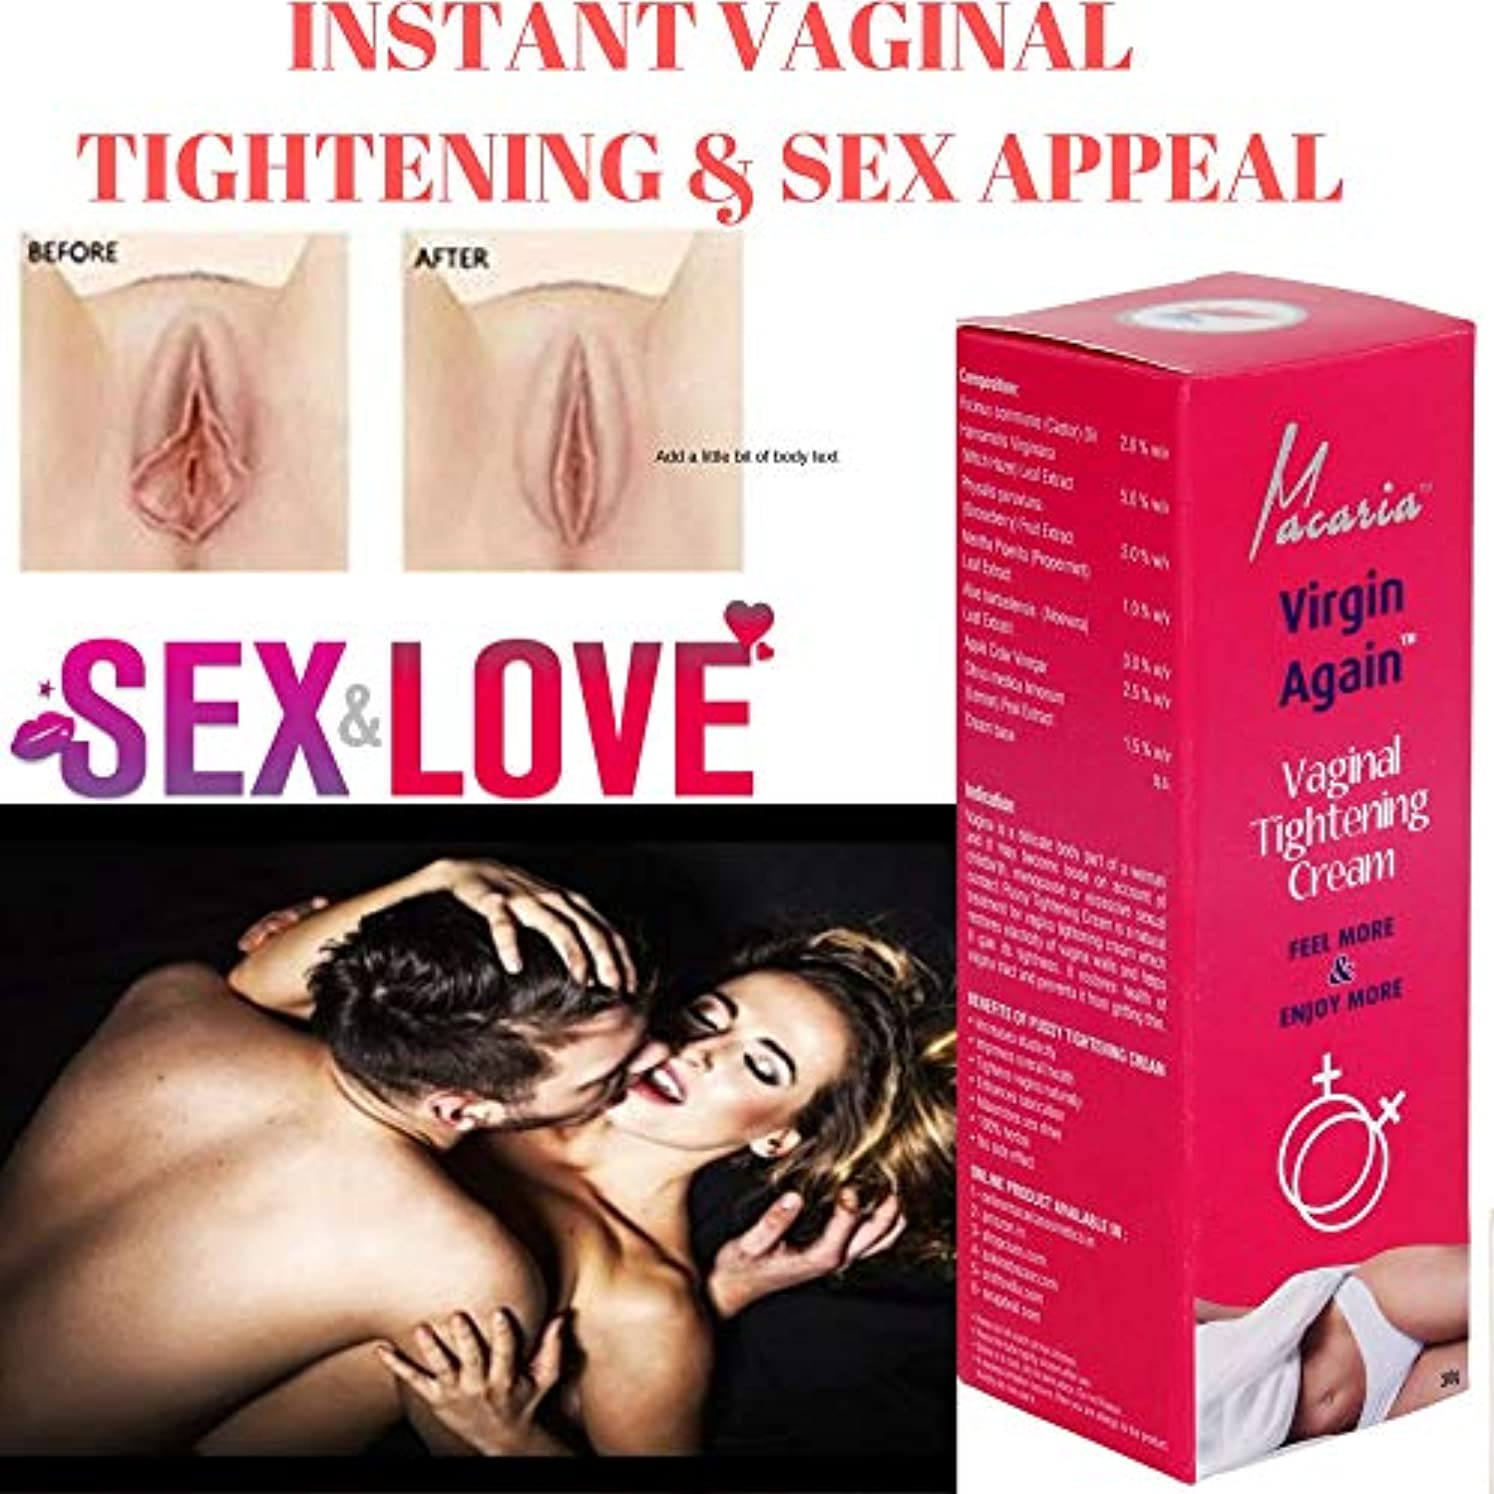 VIRGIN AGAIN CREAM (VAGINAL VAGINA TIGHTENING CREAM GEL LOTION